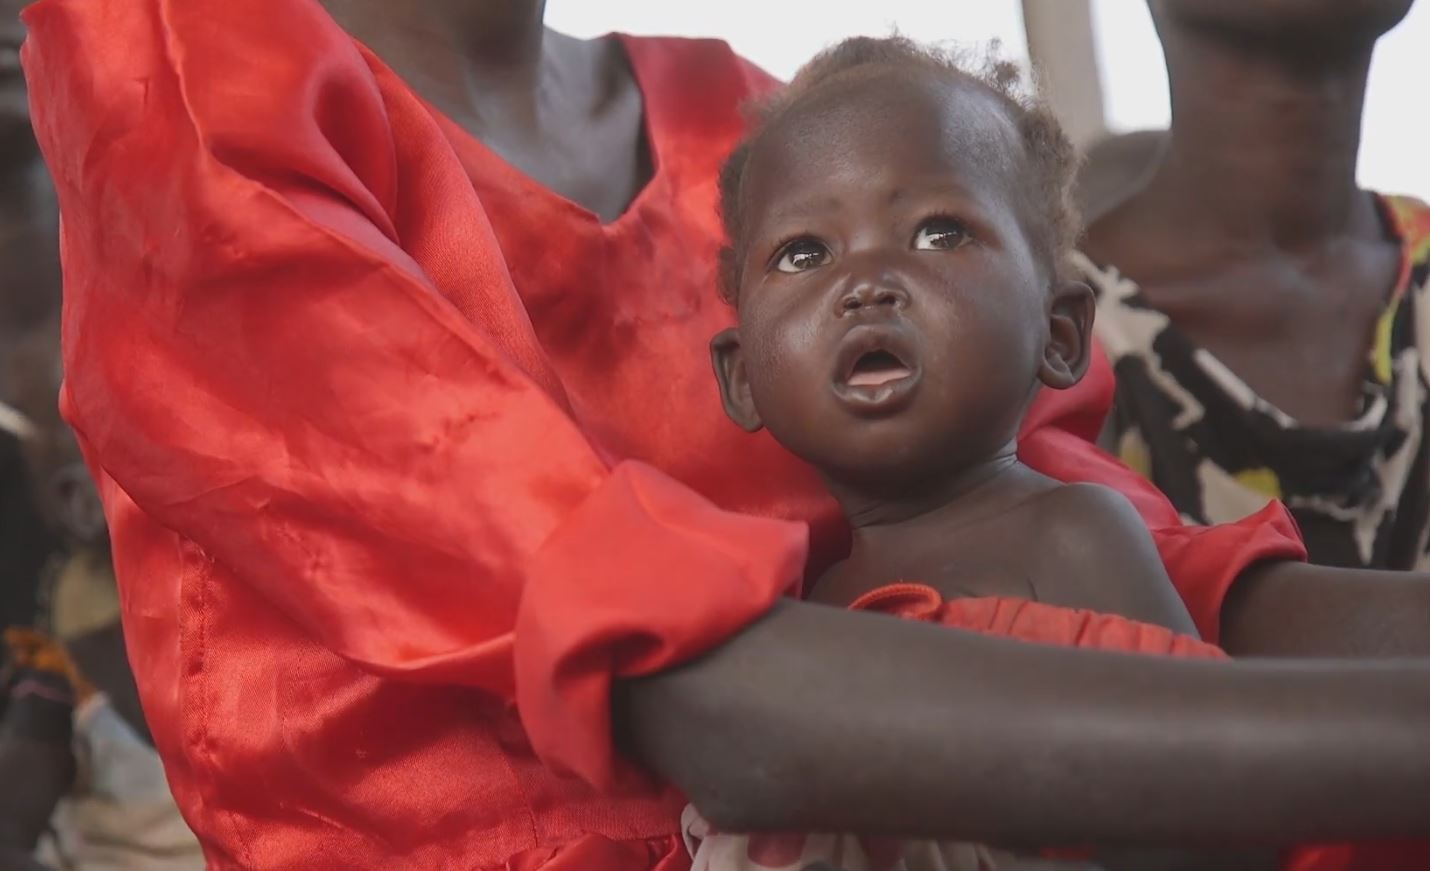 UNICEF warns of famine in South Sudan